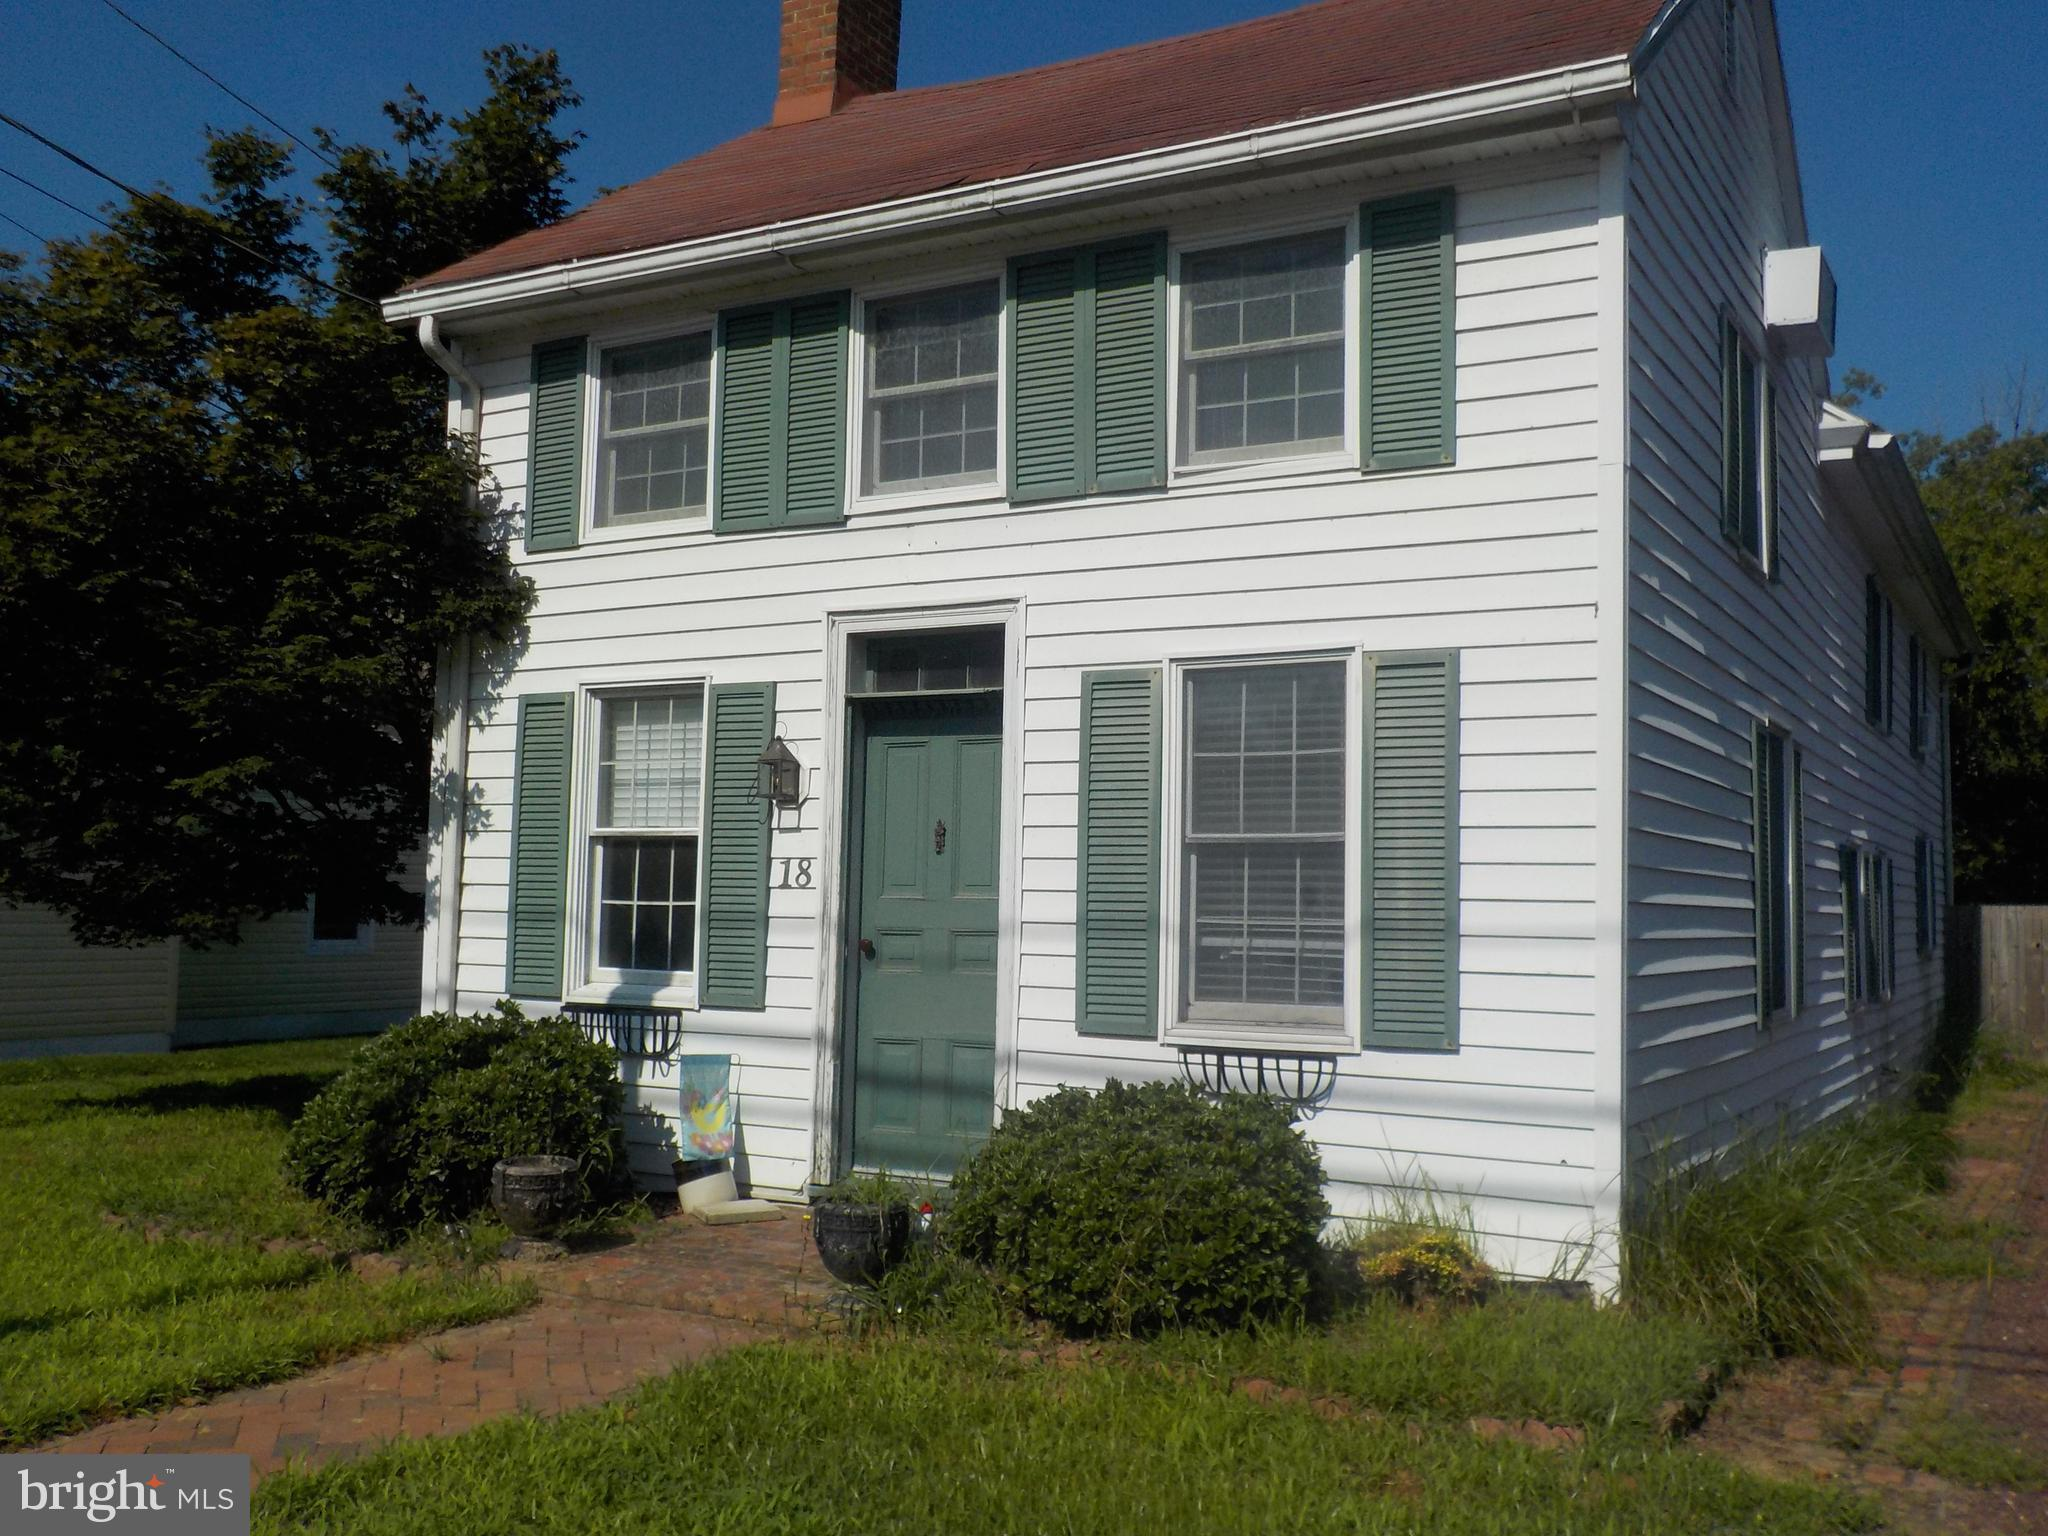 18 SOUTH MAIN STREET, EAST NEW MARKET, MD 21631